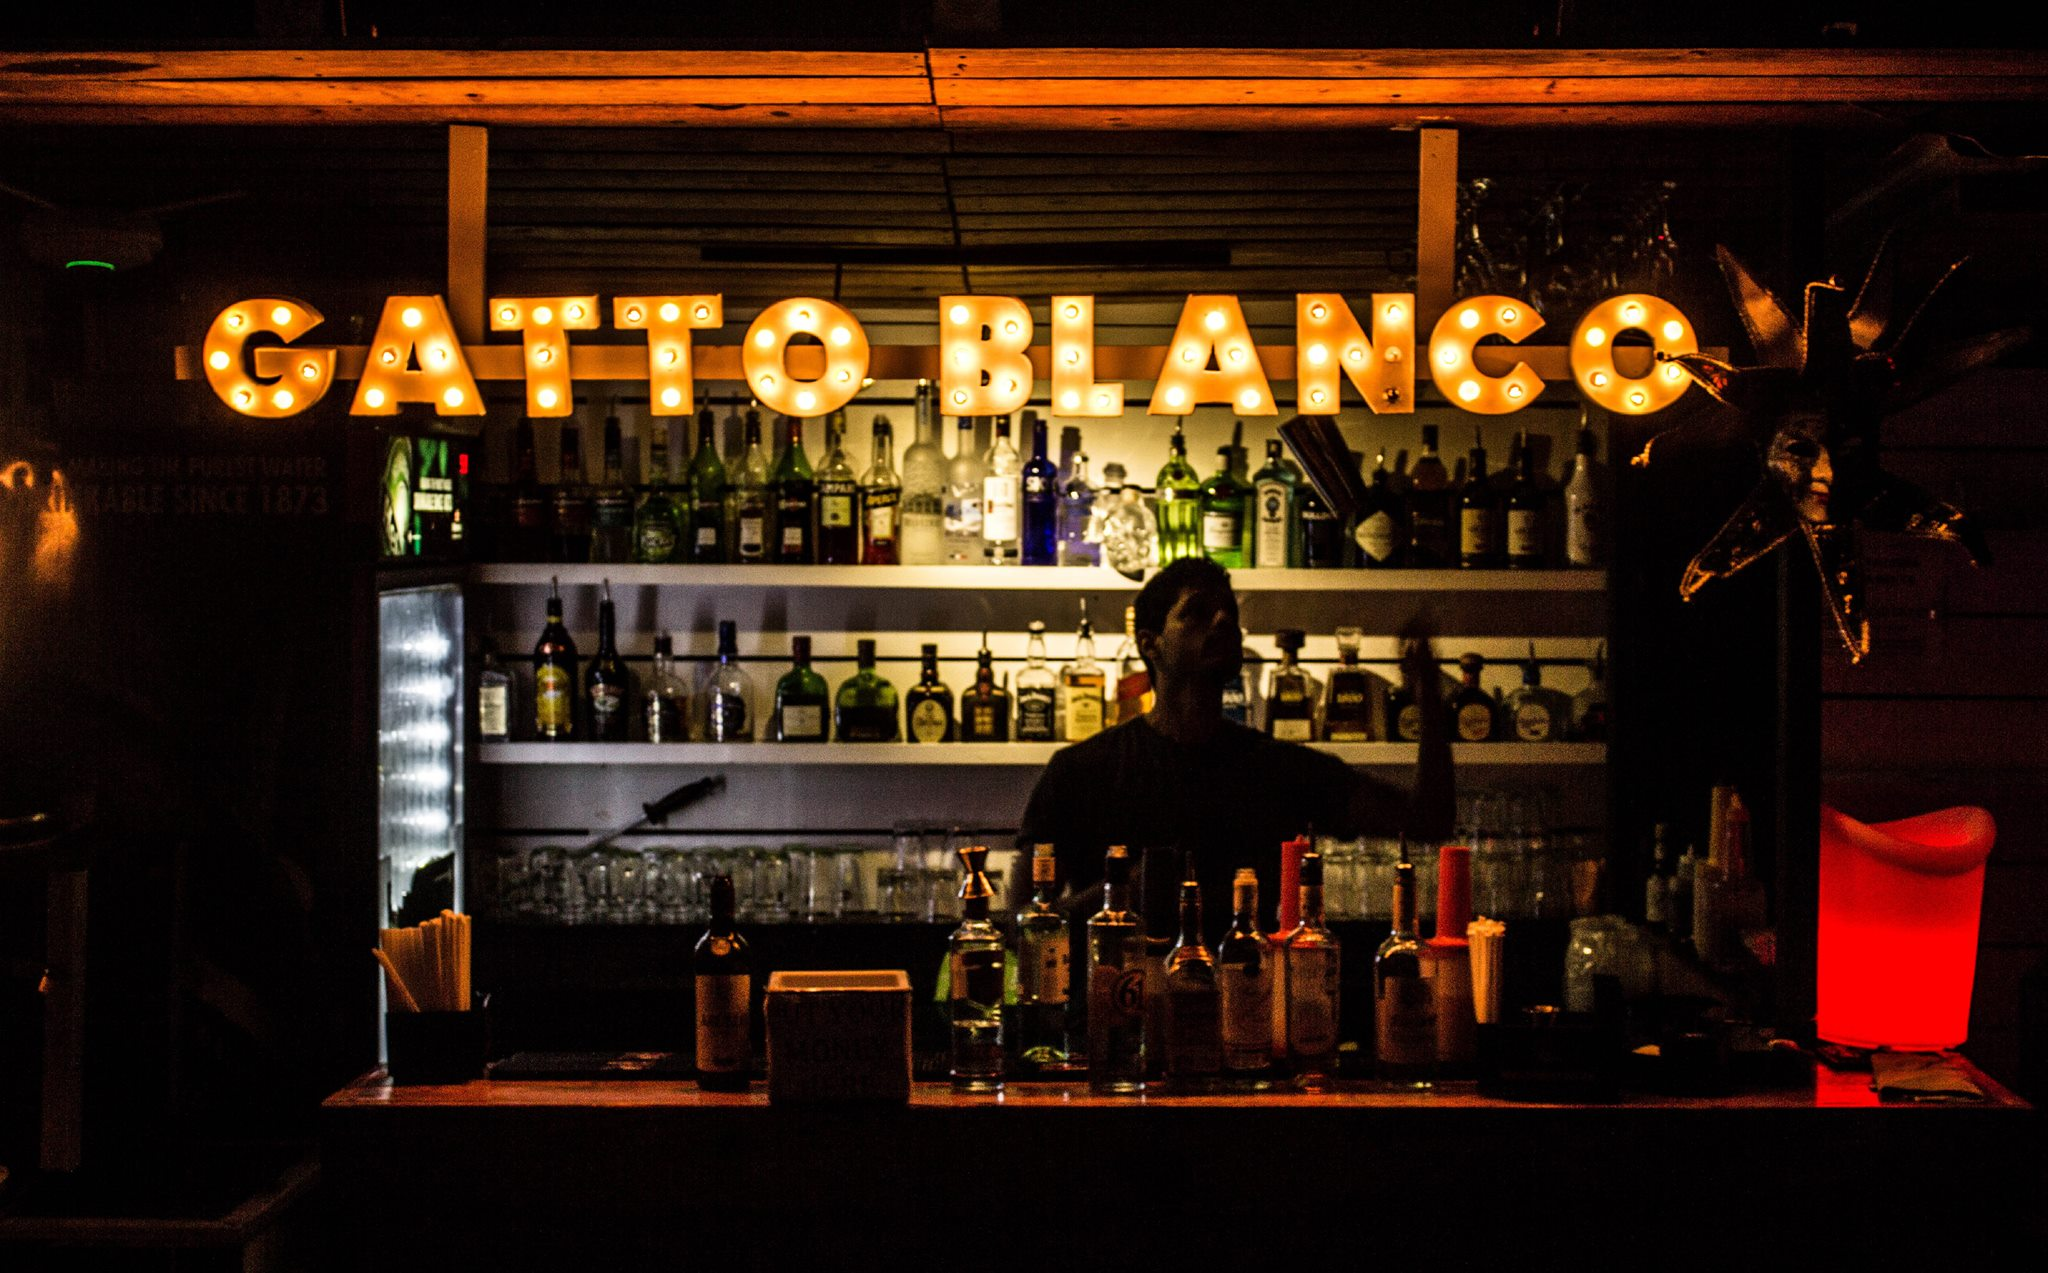 Gatto Blanco Rooftop Bar is on top of Coliseum Roma Restaurant